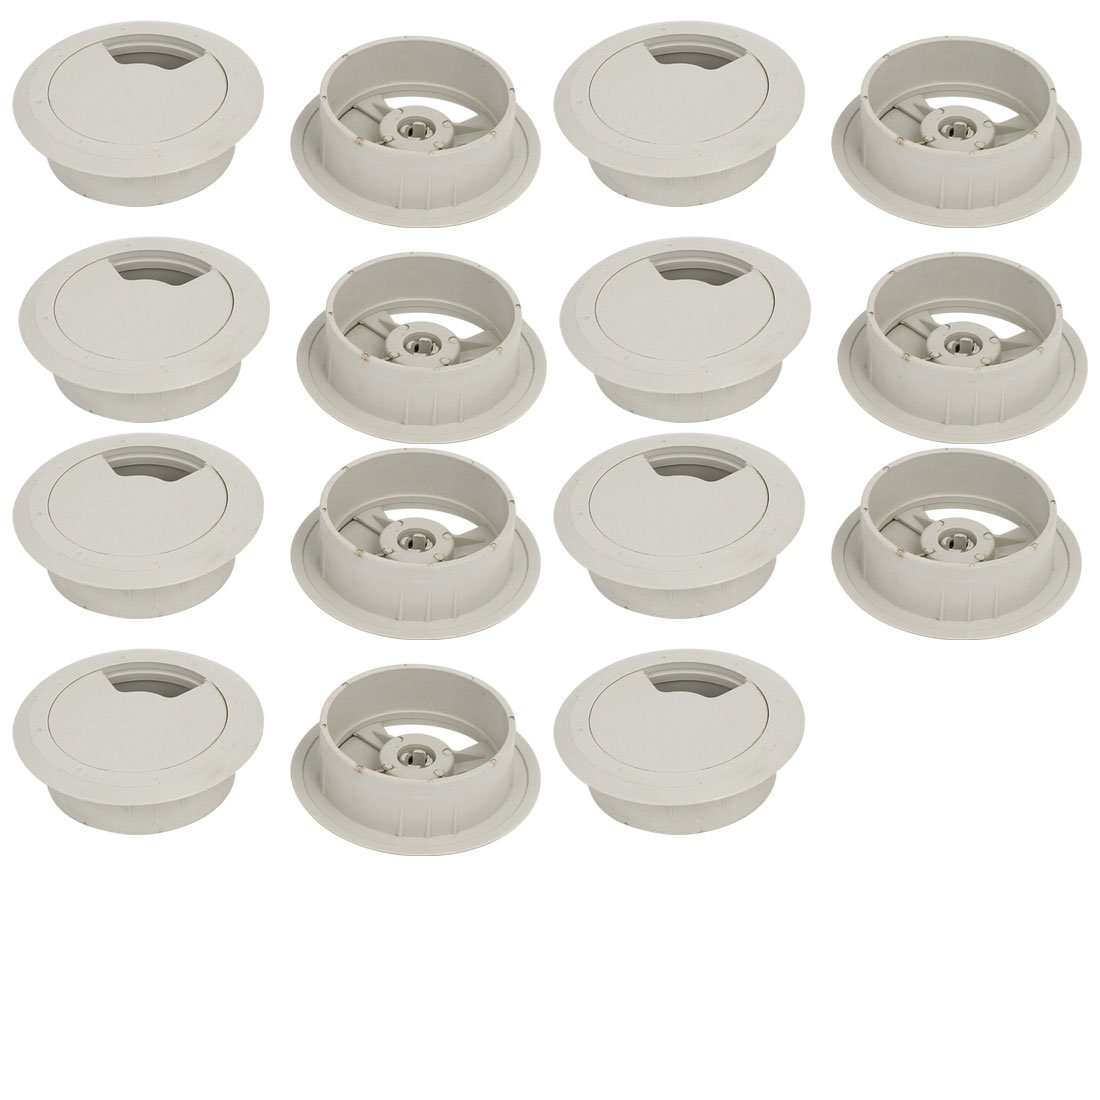 uxcell Computer Desk 60mm Dia Plastic Rotatable Grommet Cable Hole Cover Gray 15pcs